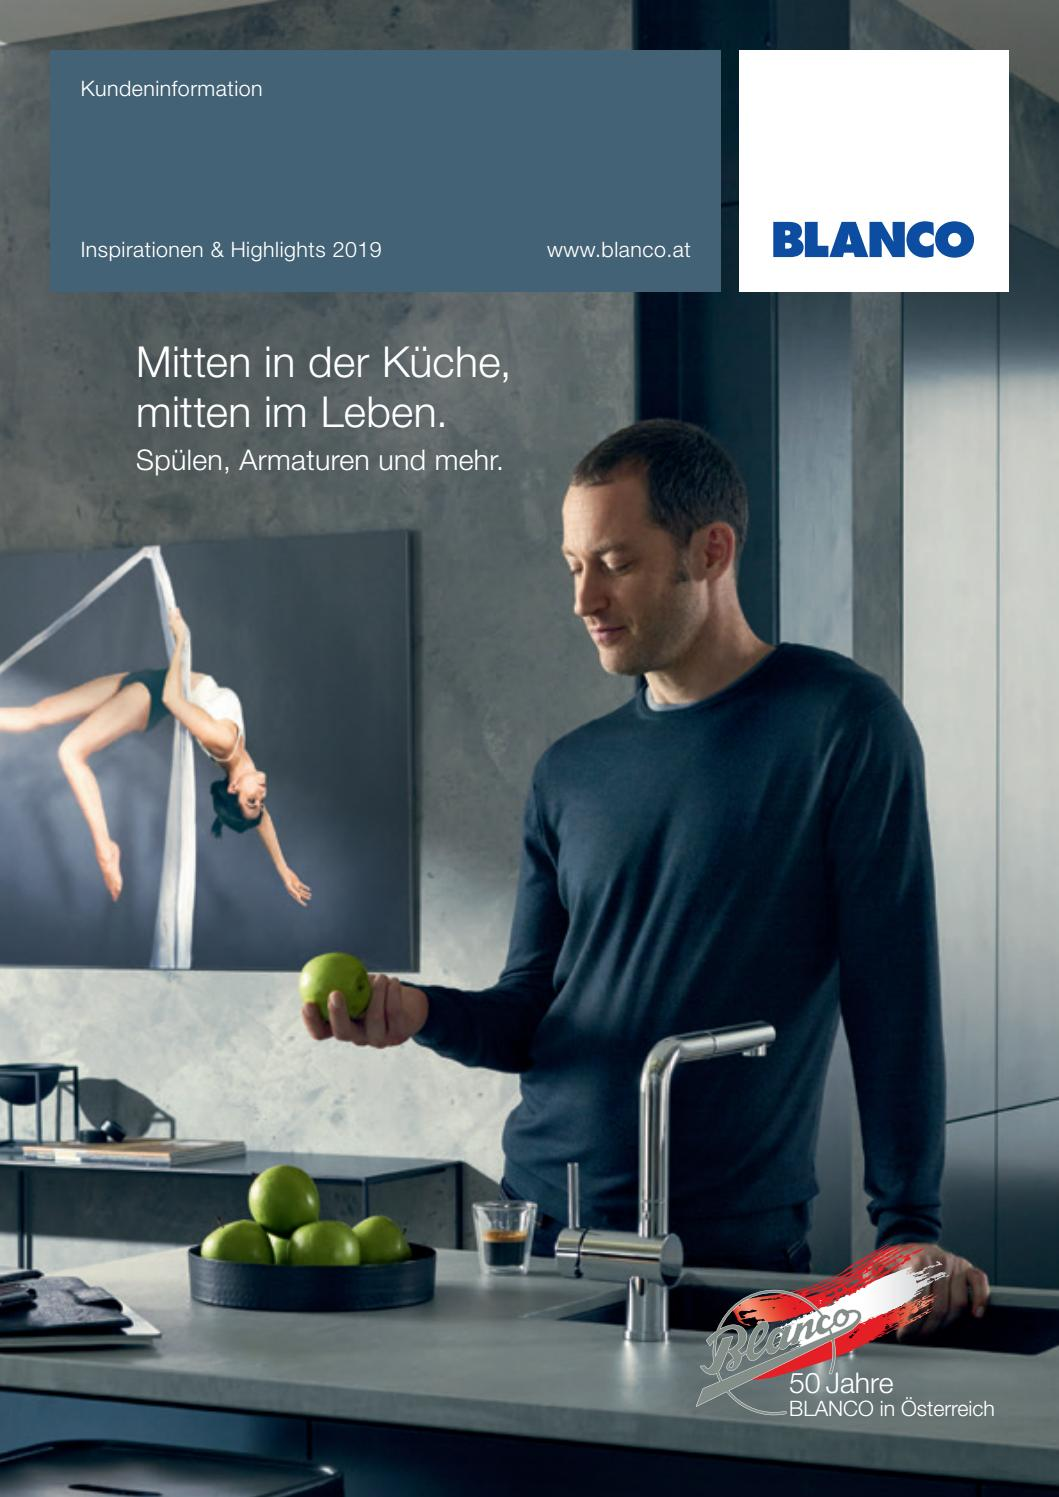 Blanco Inspiration Highlights 2019 By Wohnnet Issuu